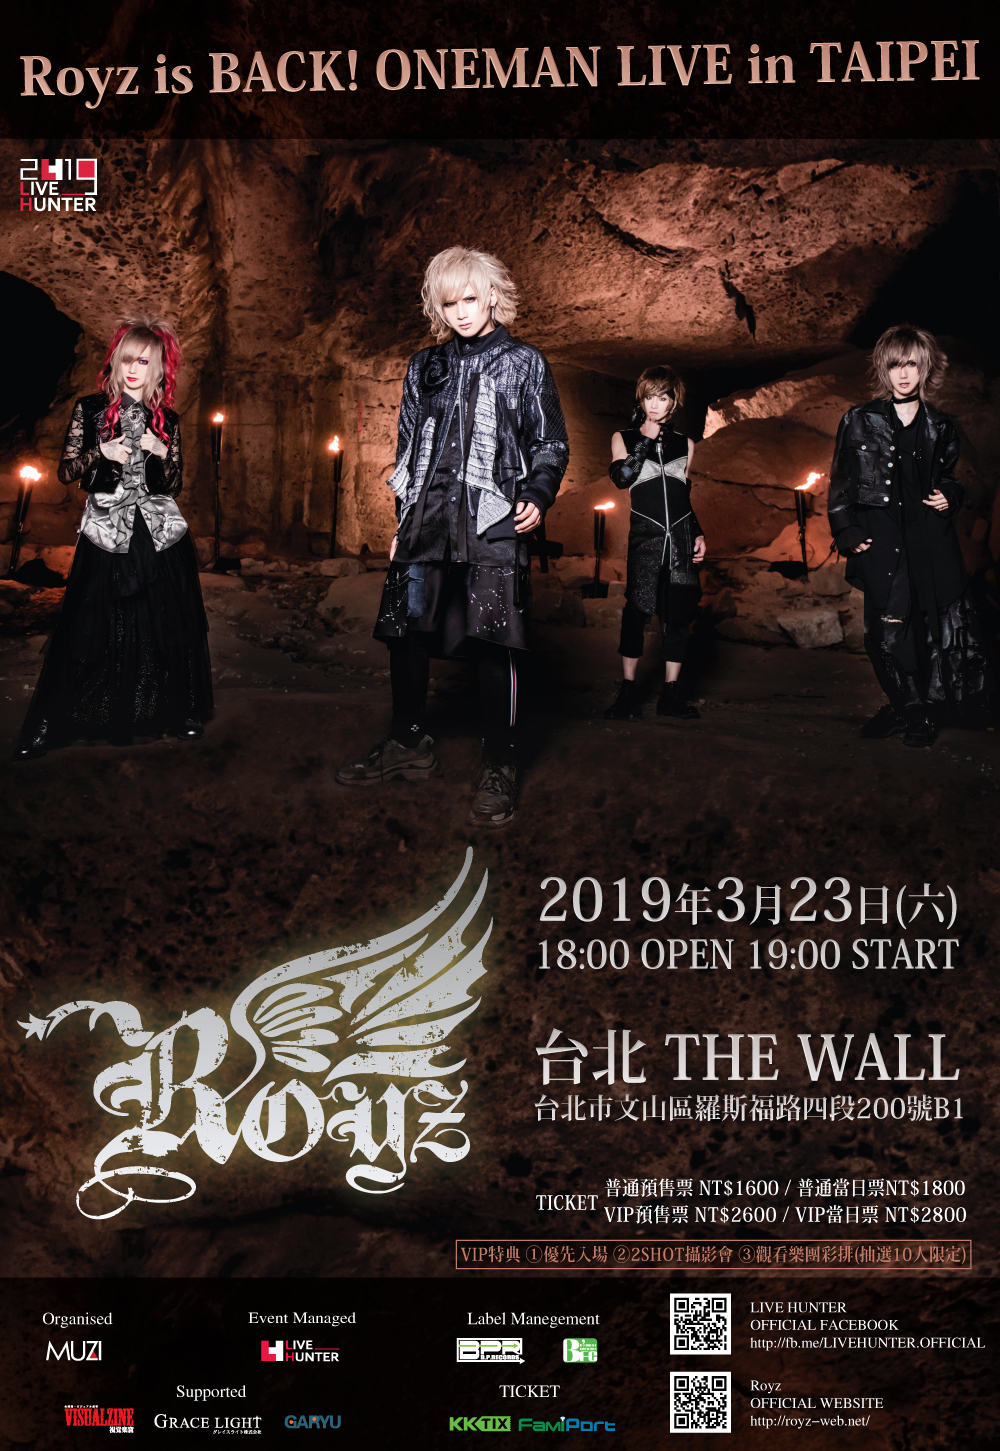 Royz is BACK! Royz Oneman LIVE in Ta